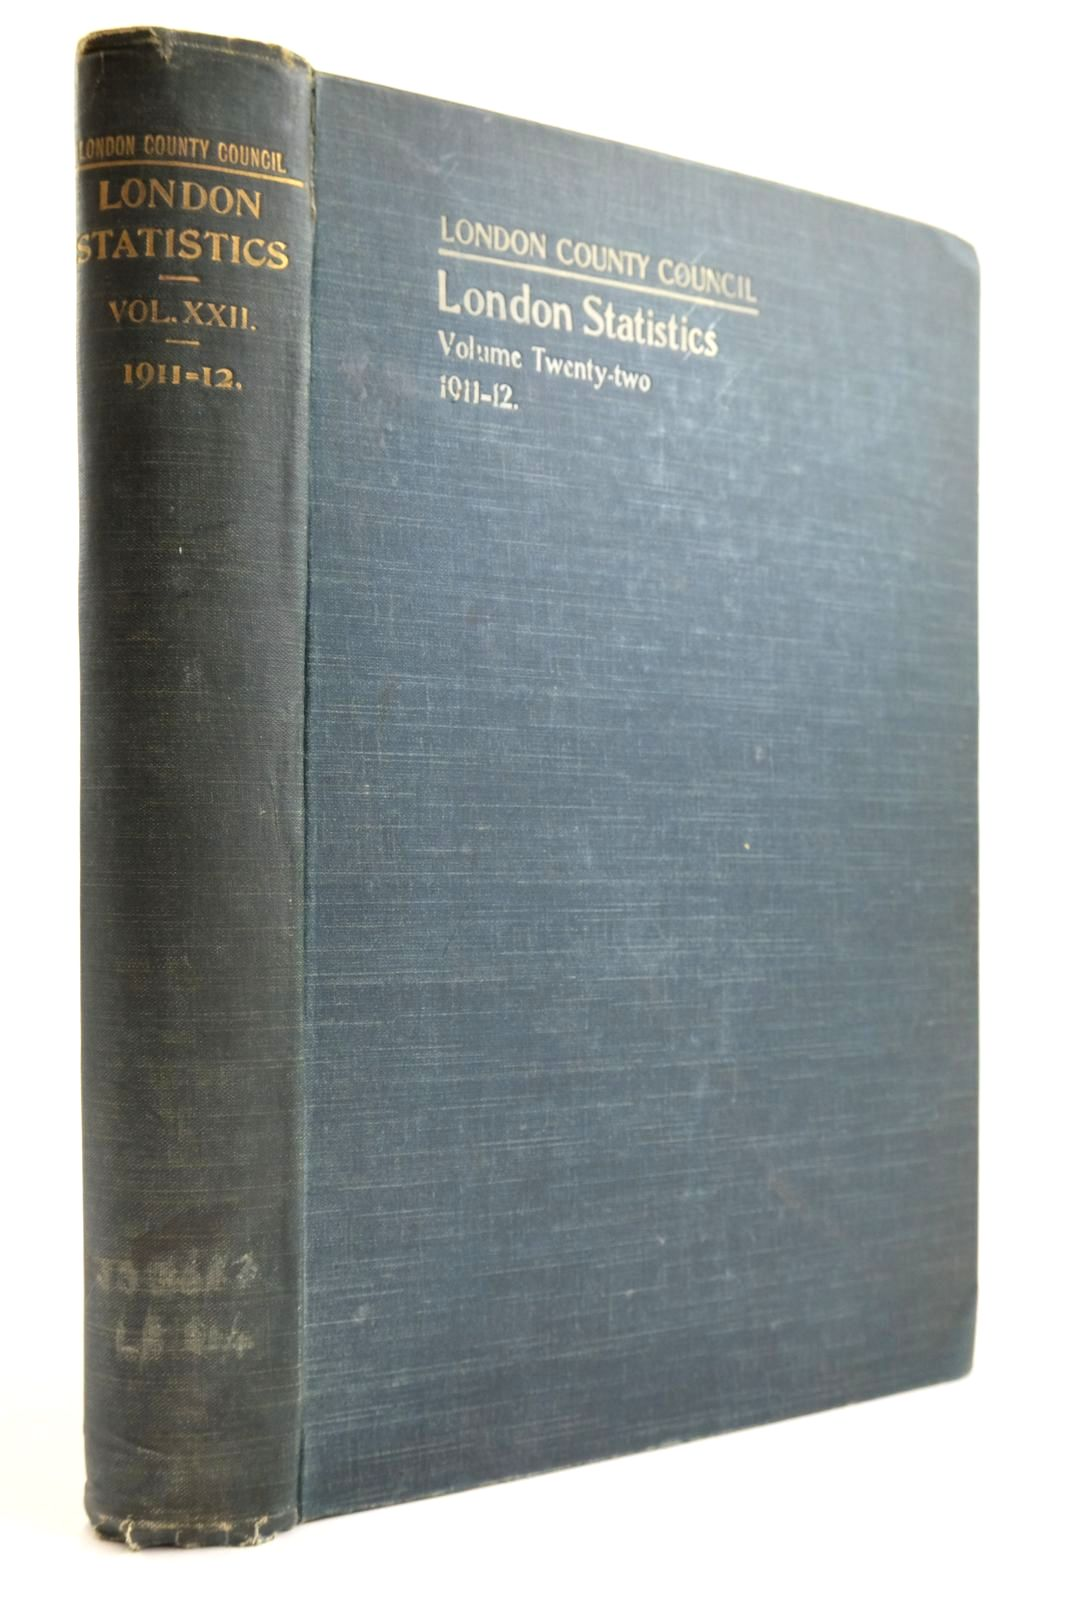 Photo of LONDON STATISTICS 1911-12 VOL. XXII published by London County Council (STOCK CODE: 2134147)  for sale by Stella & Rose's Books